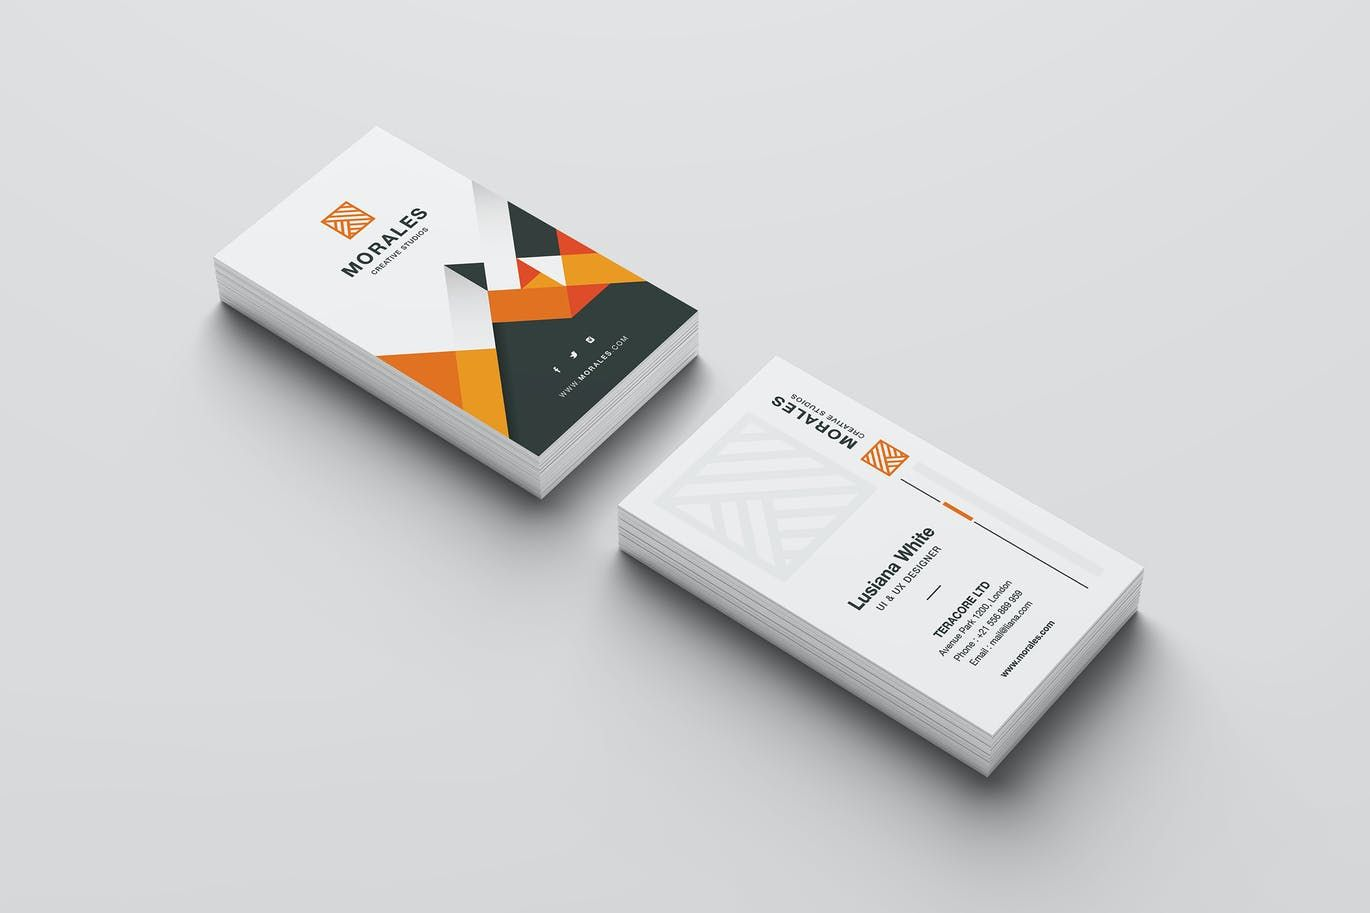 Banners At 4 00 Sq Footage 1000 5x7 Postcards 95 00 1000 Business Cards 45 00 Business Card Graphic Download Business Card Cool Business Cards